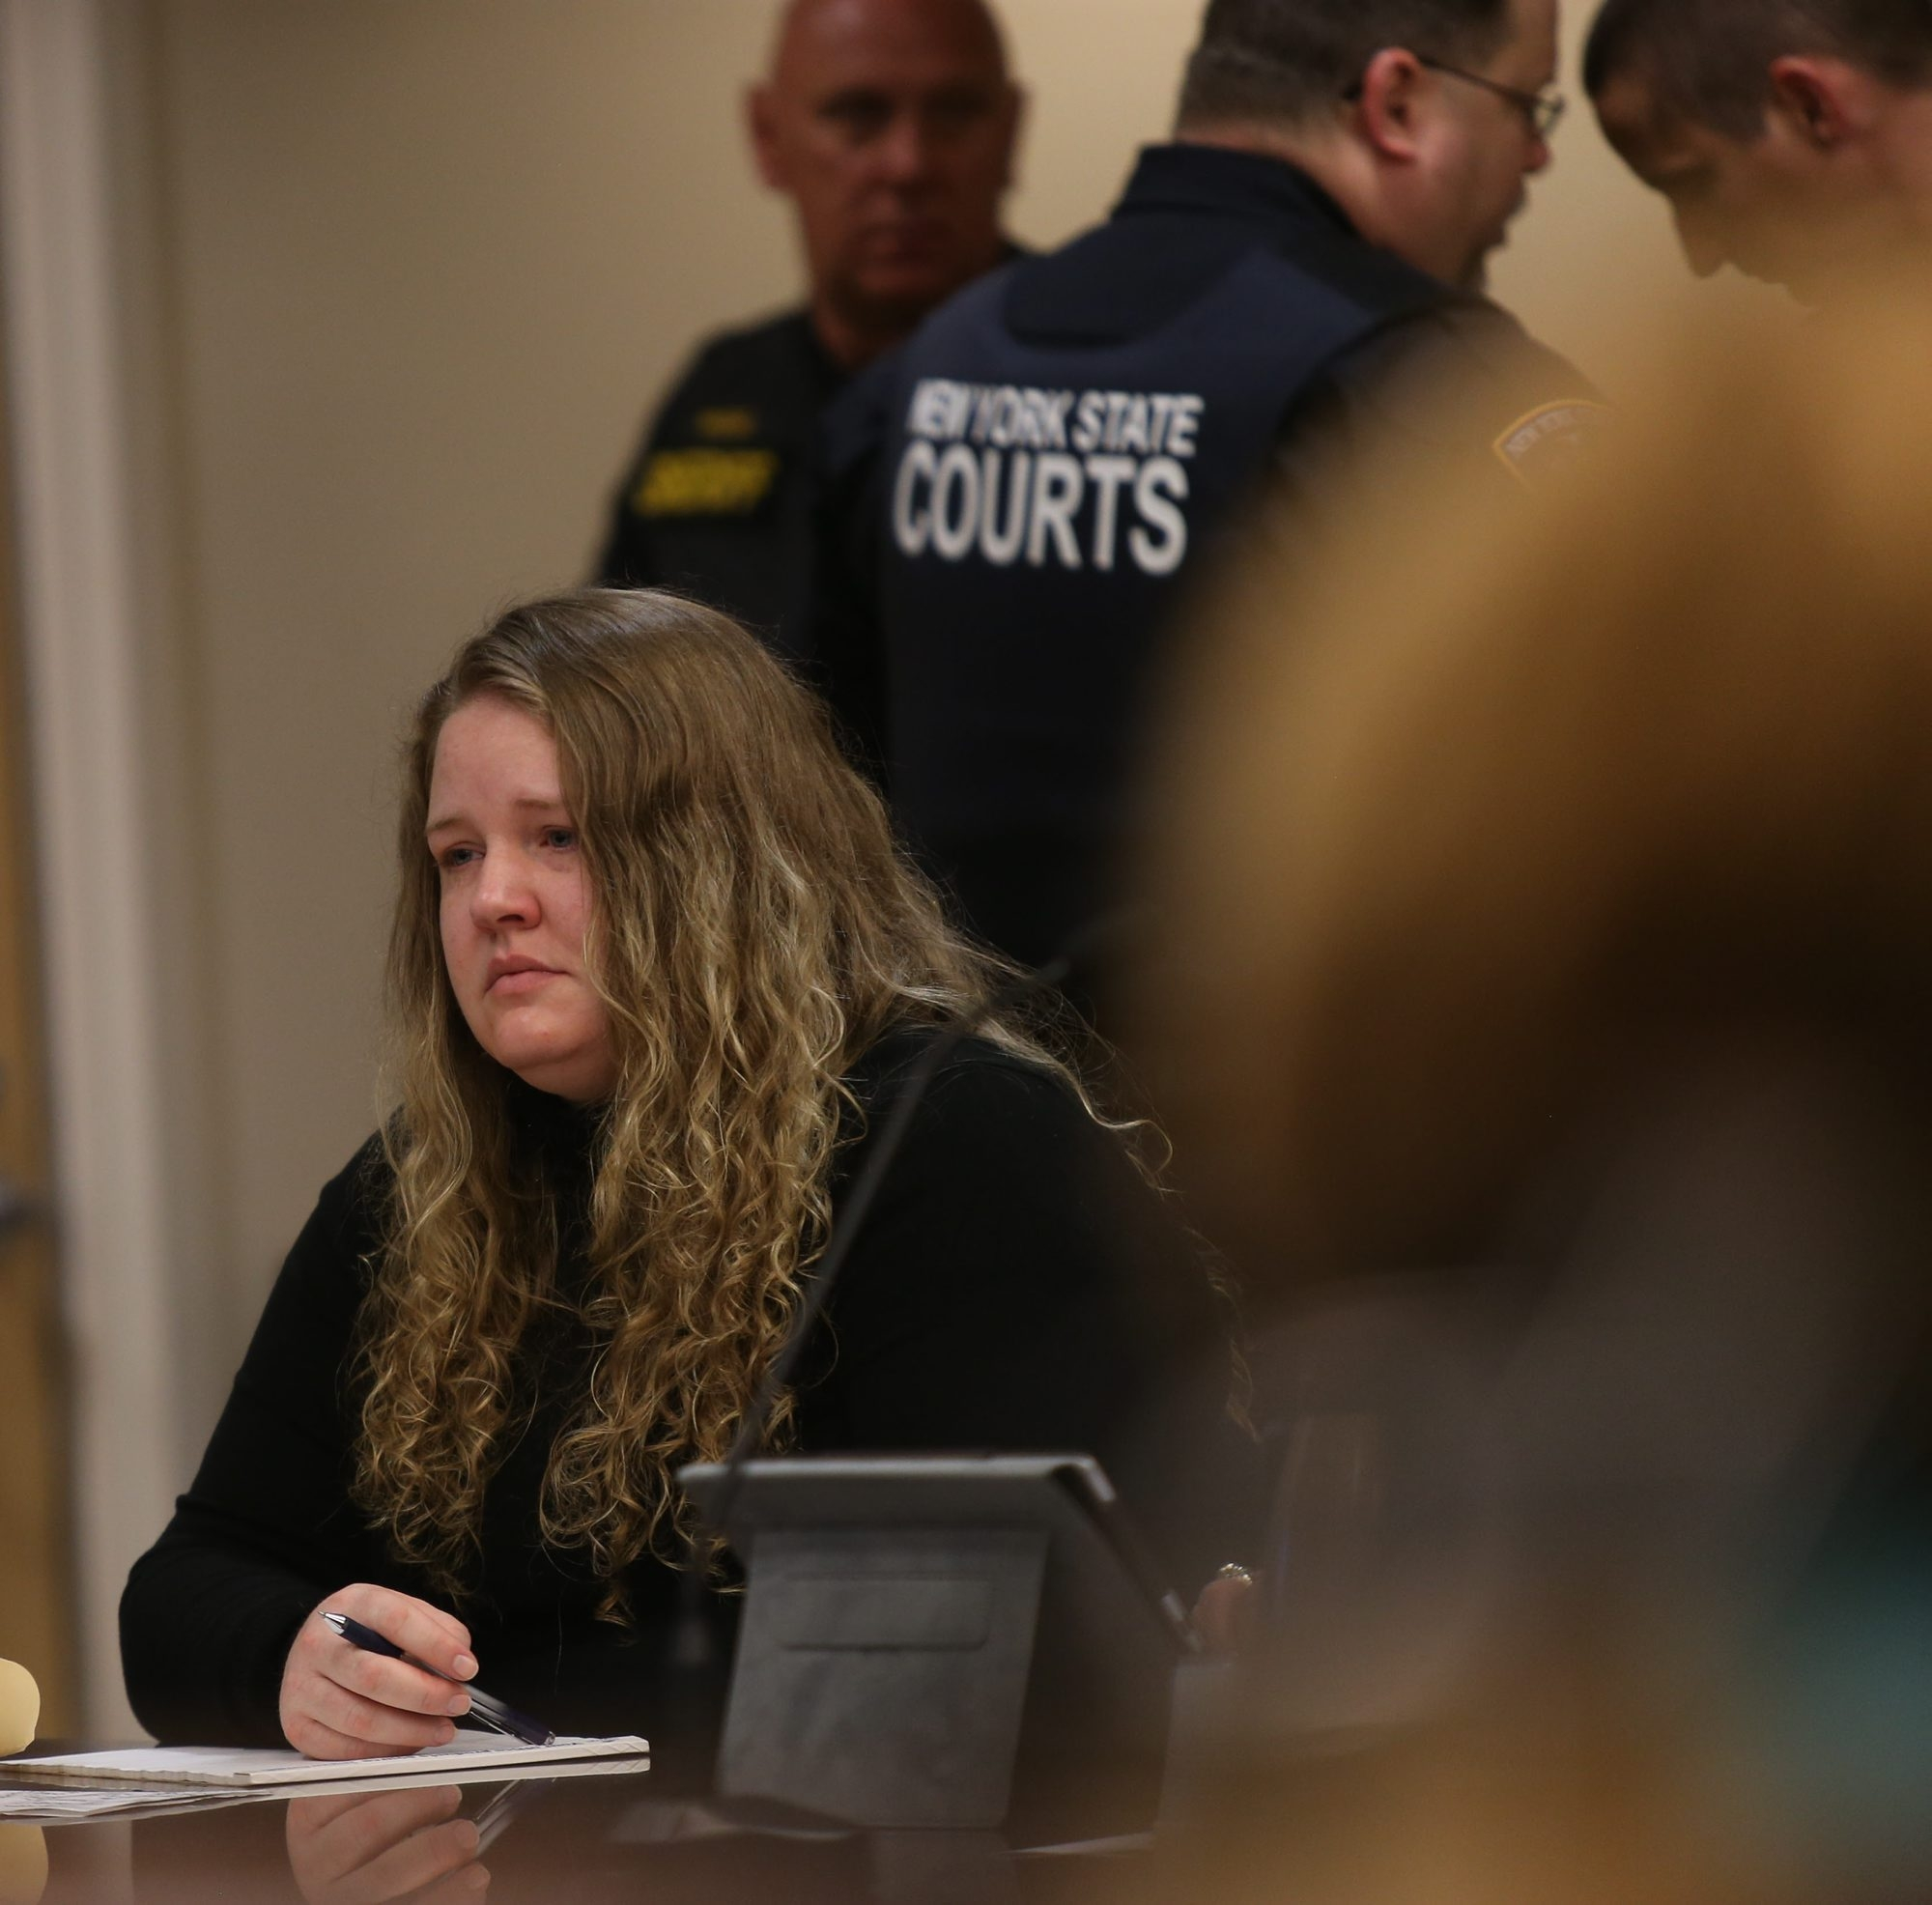 Candace J. Cartagena, in the Erie County Courthouse in Buffalo, Monday, June 9, 2014.  (Charles Lewis/Buffalo News)